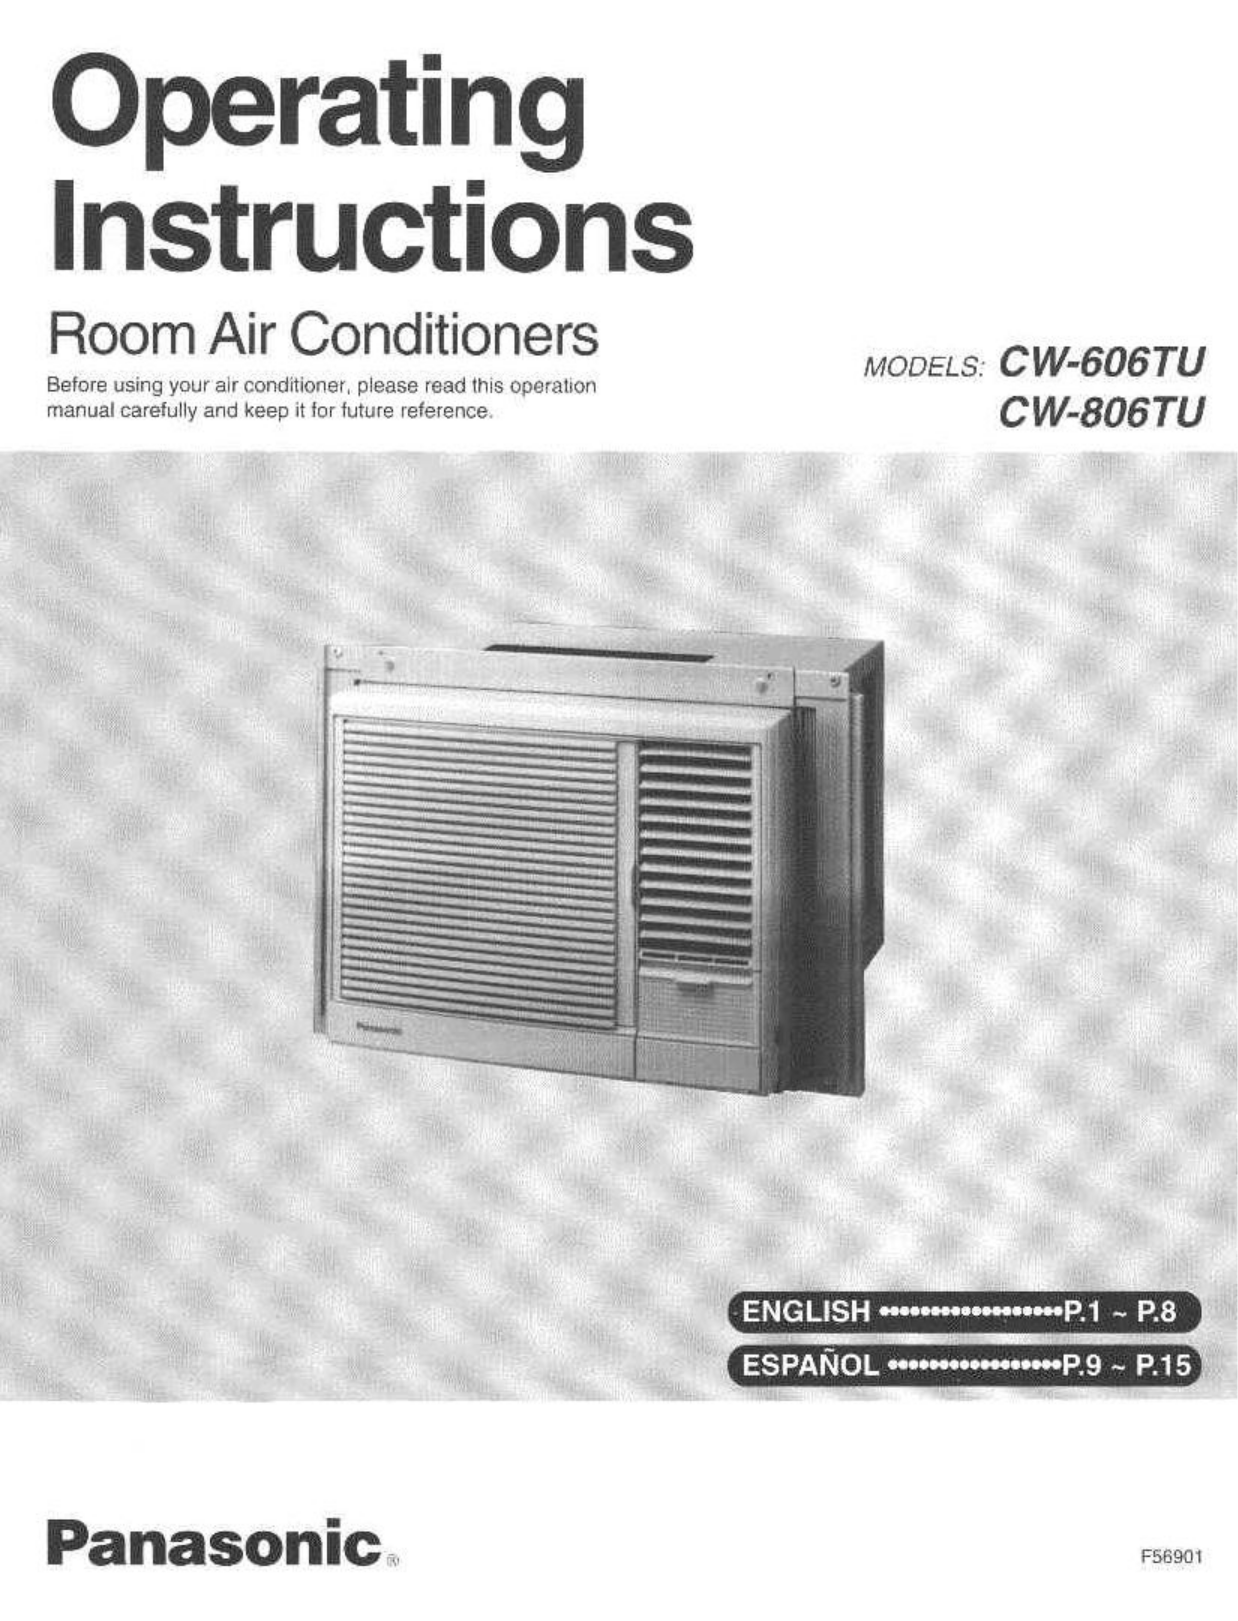 Panasonic Inverter Air Conditioner Installation Manual